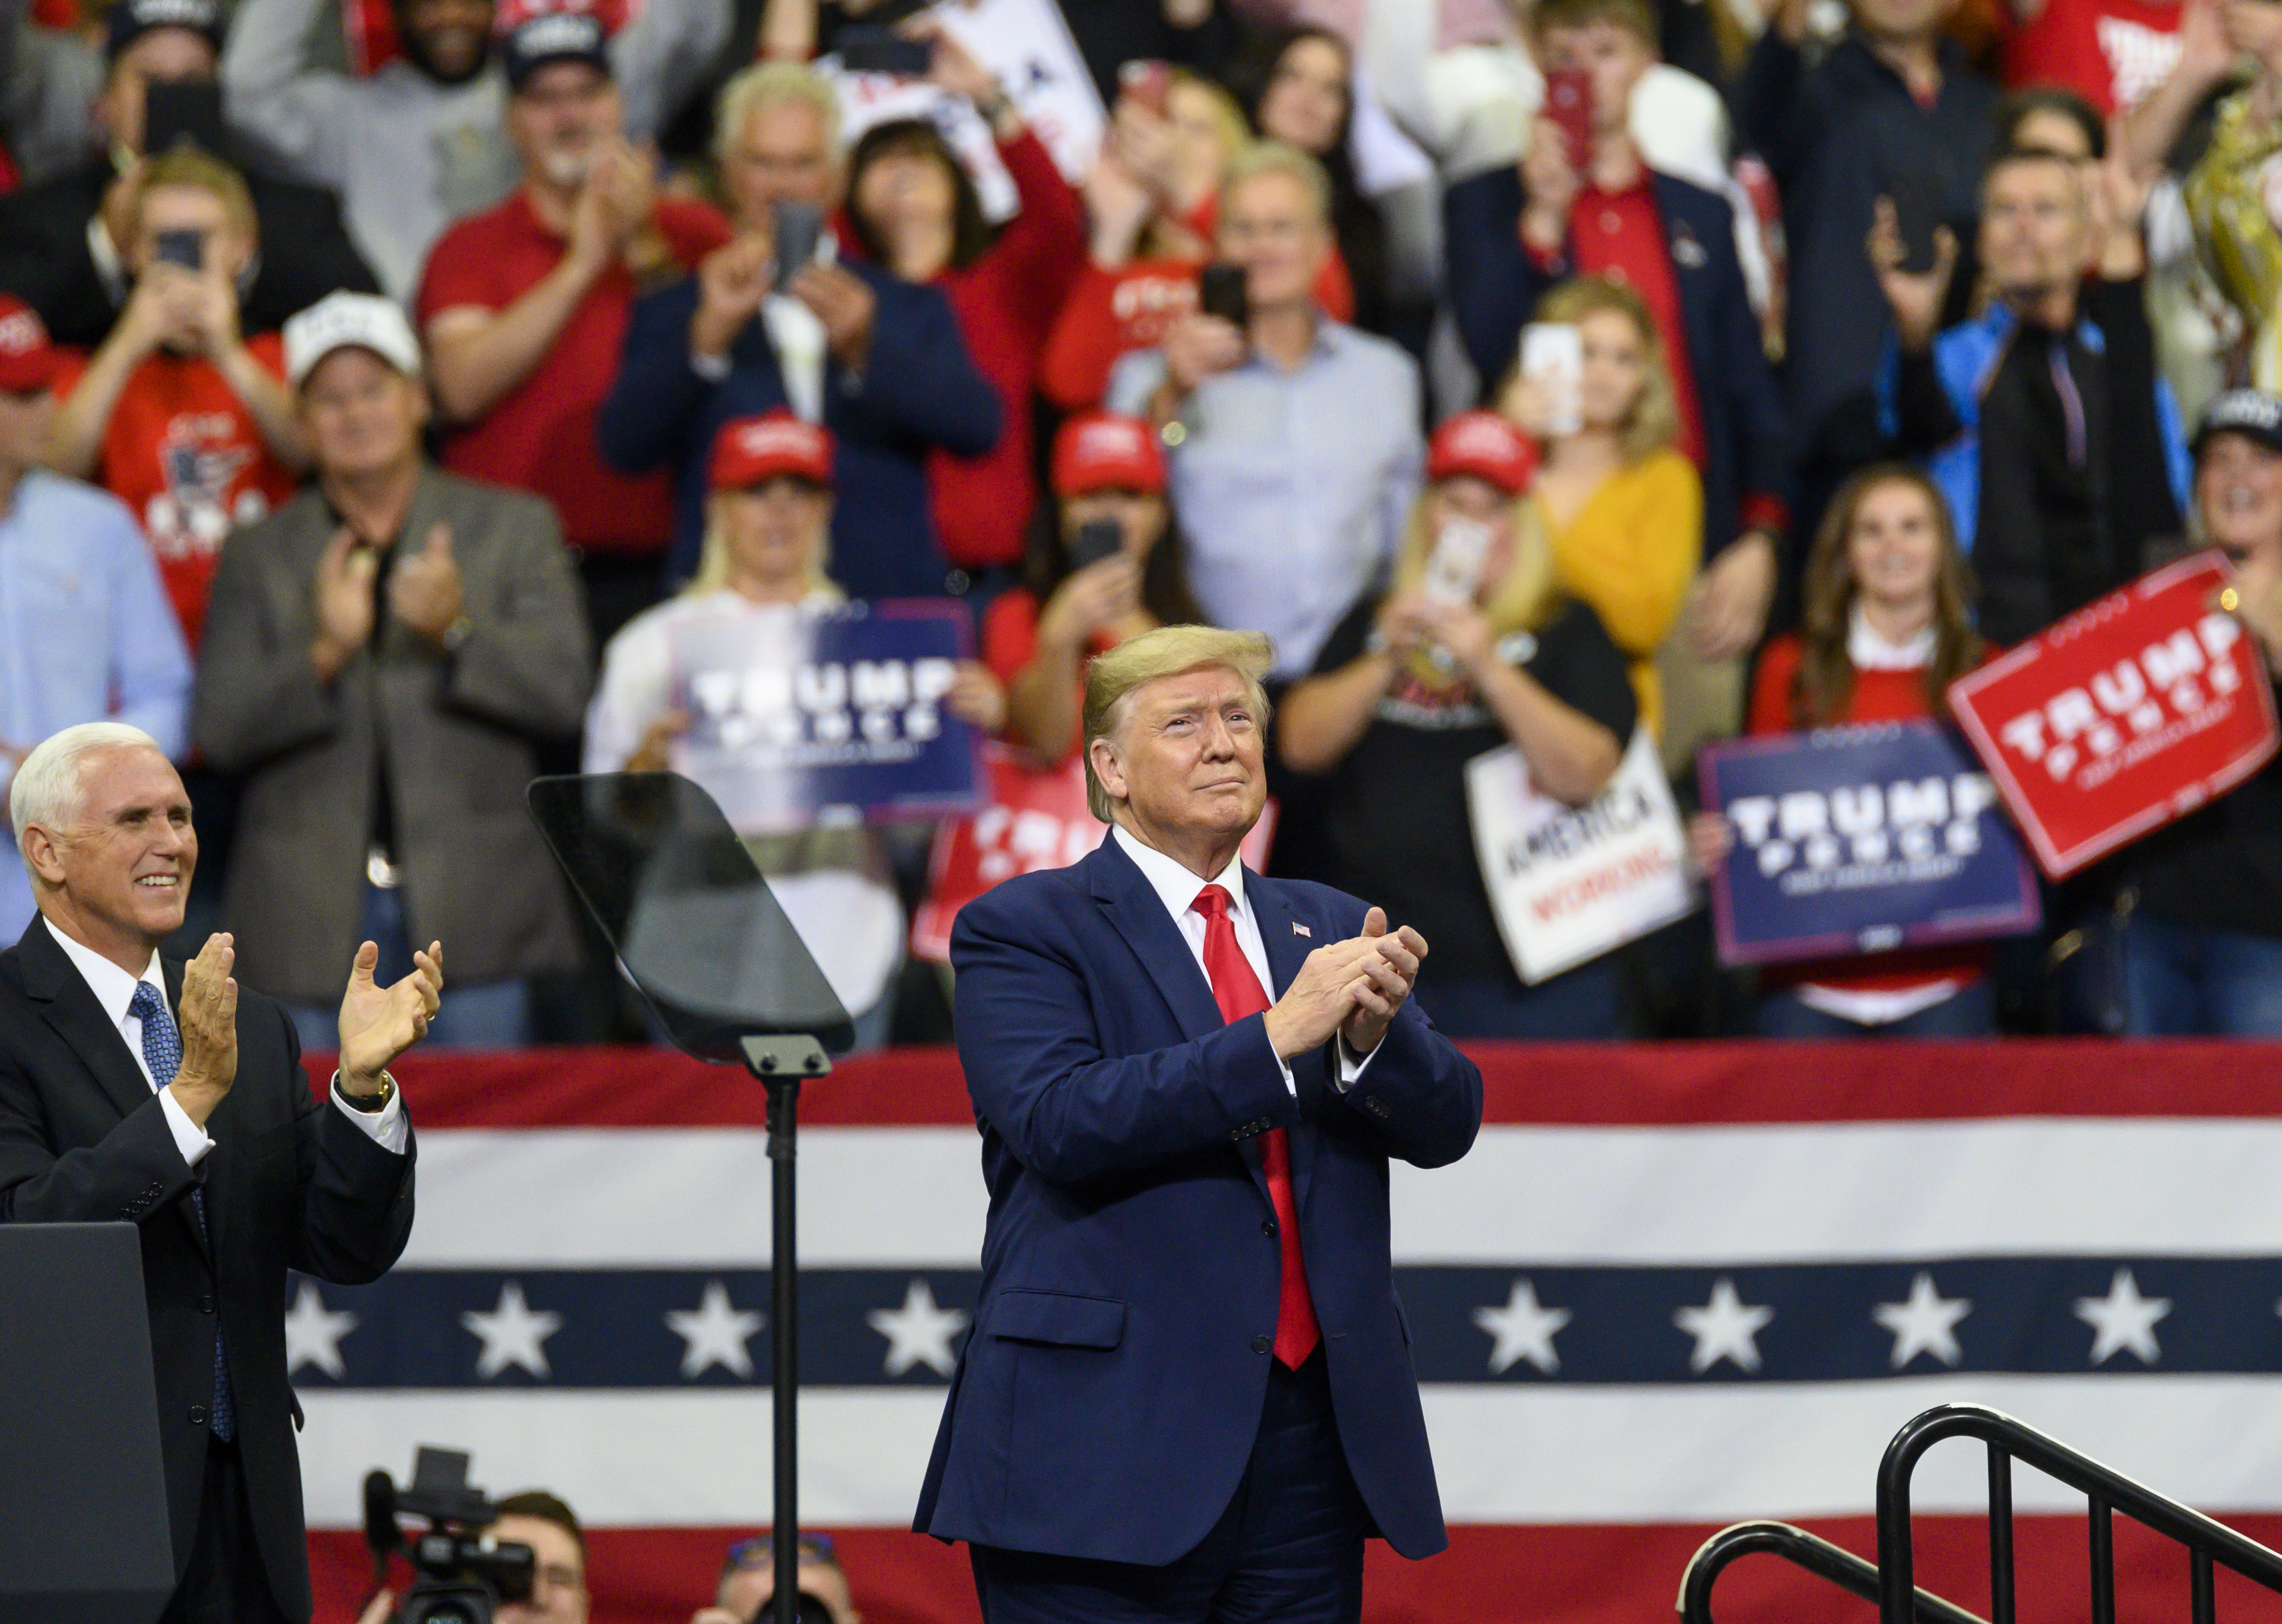 Trump's Minneapolis rally was a window into how ugly his 2020 campaign will be